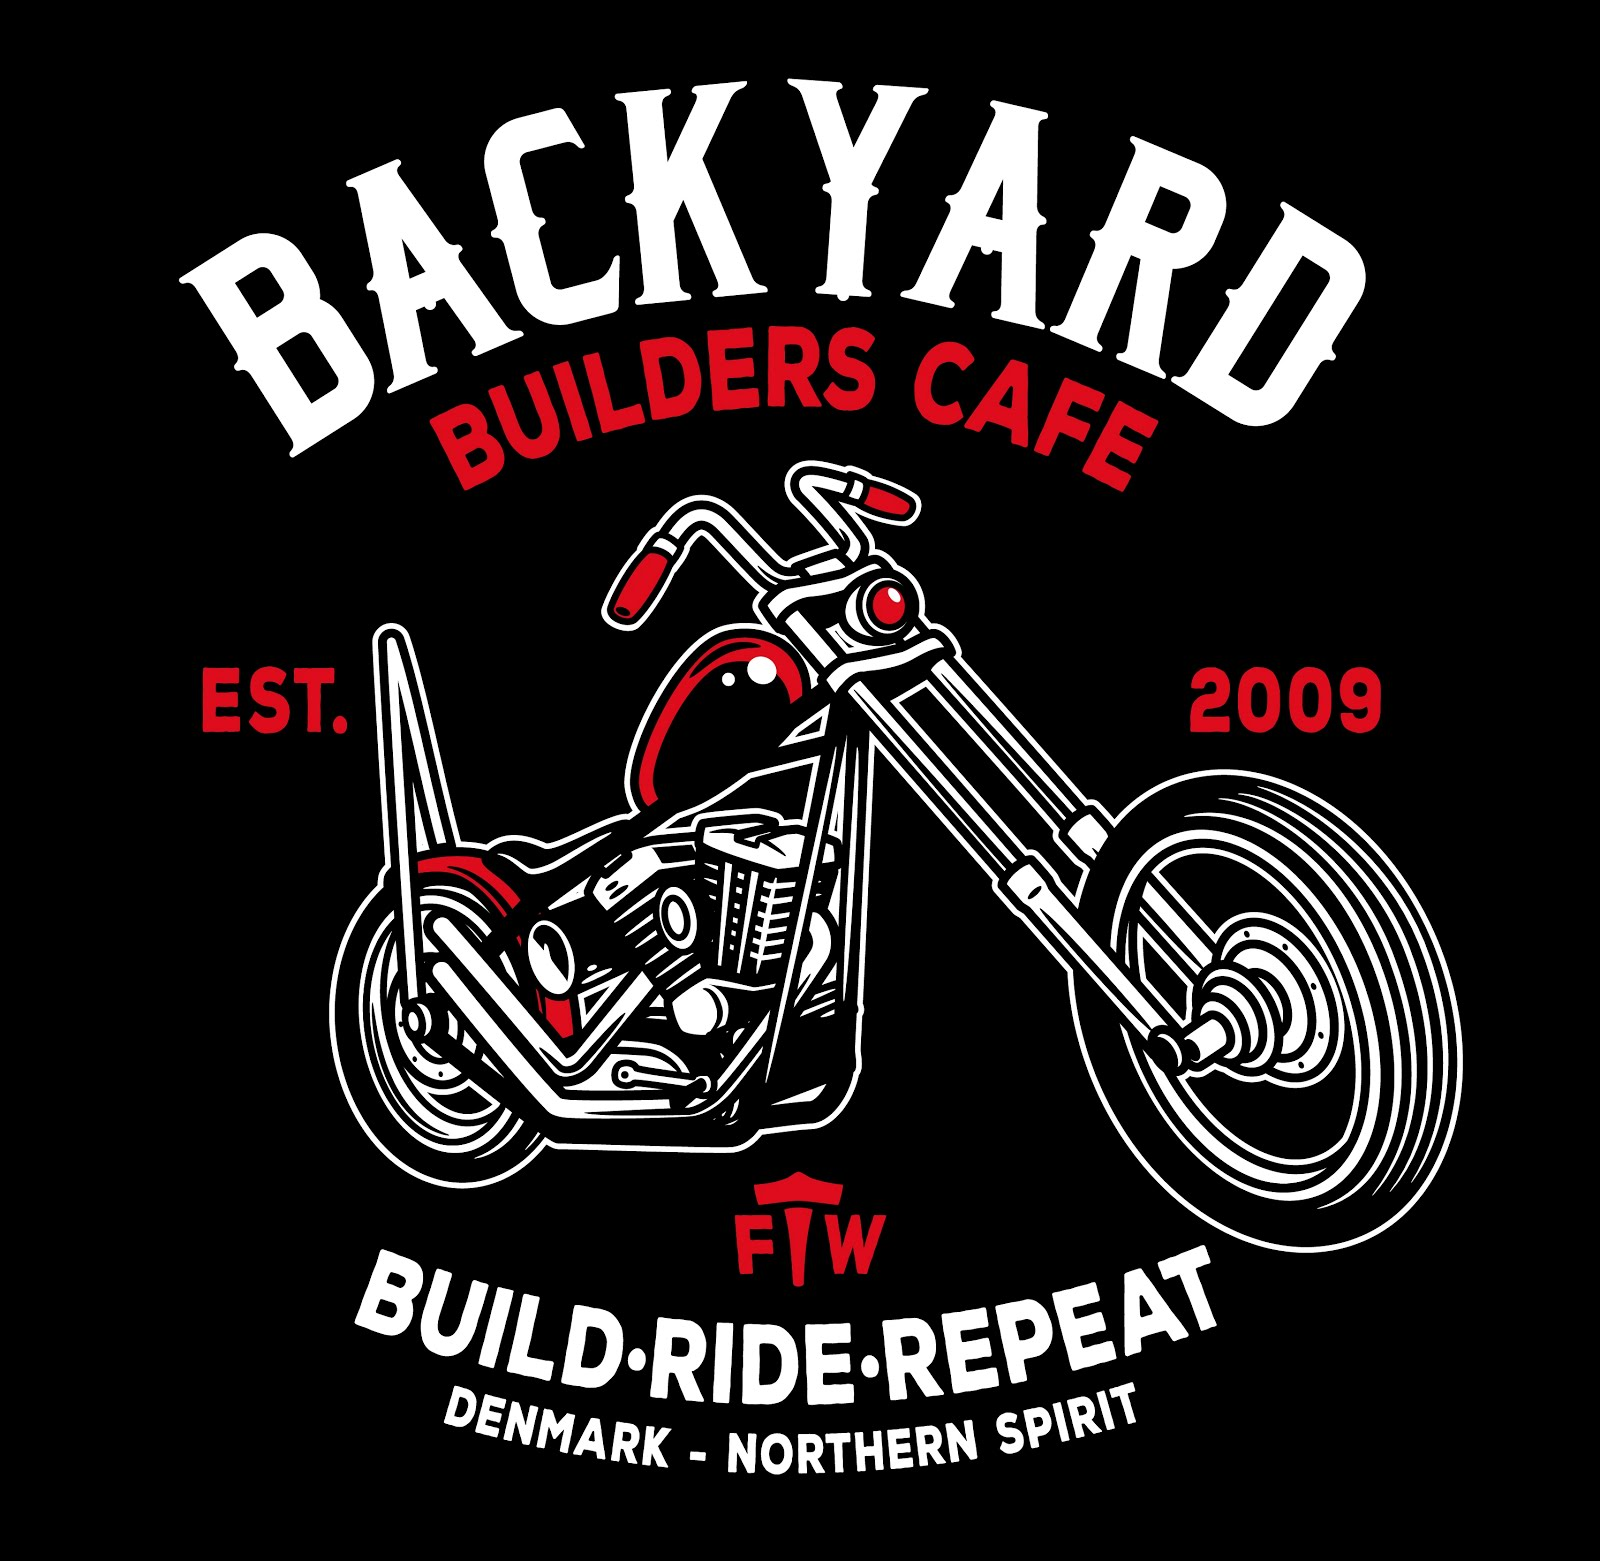 Backyard Builders Cafe...